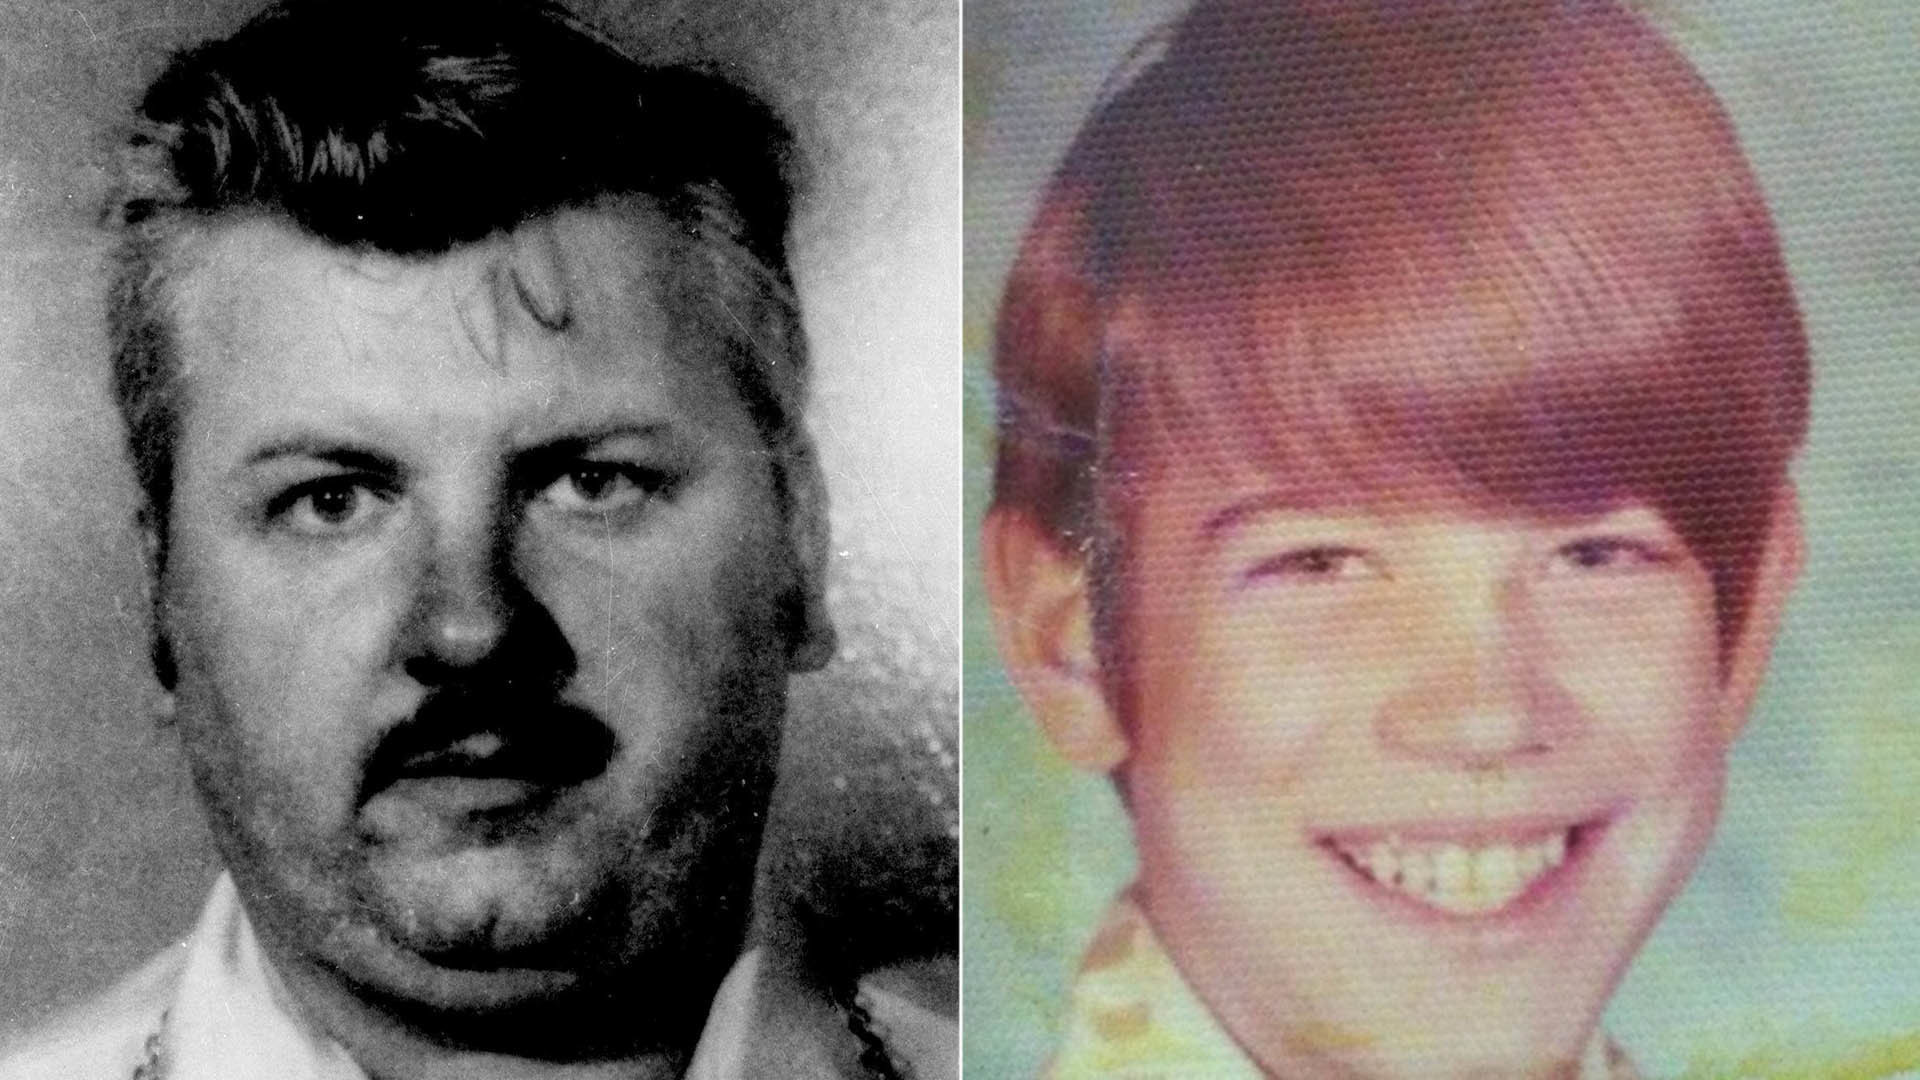 Second long-unknown Gacy victim identified as boy from Minnesota - Chicago  Tribune d06e241a870